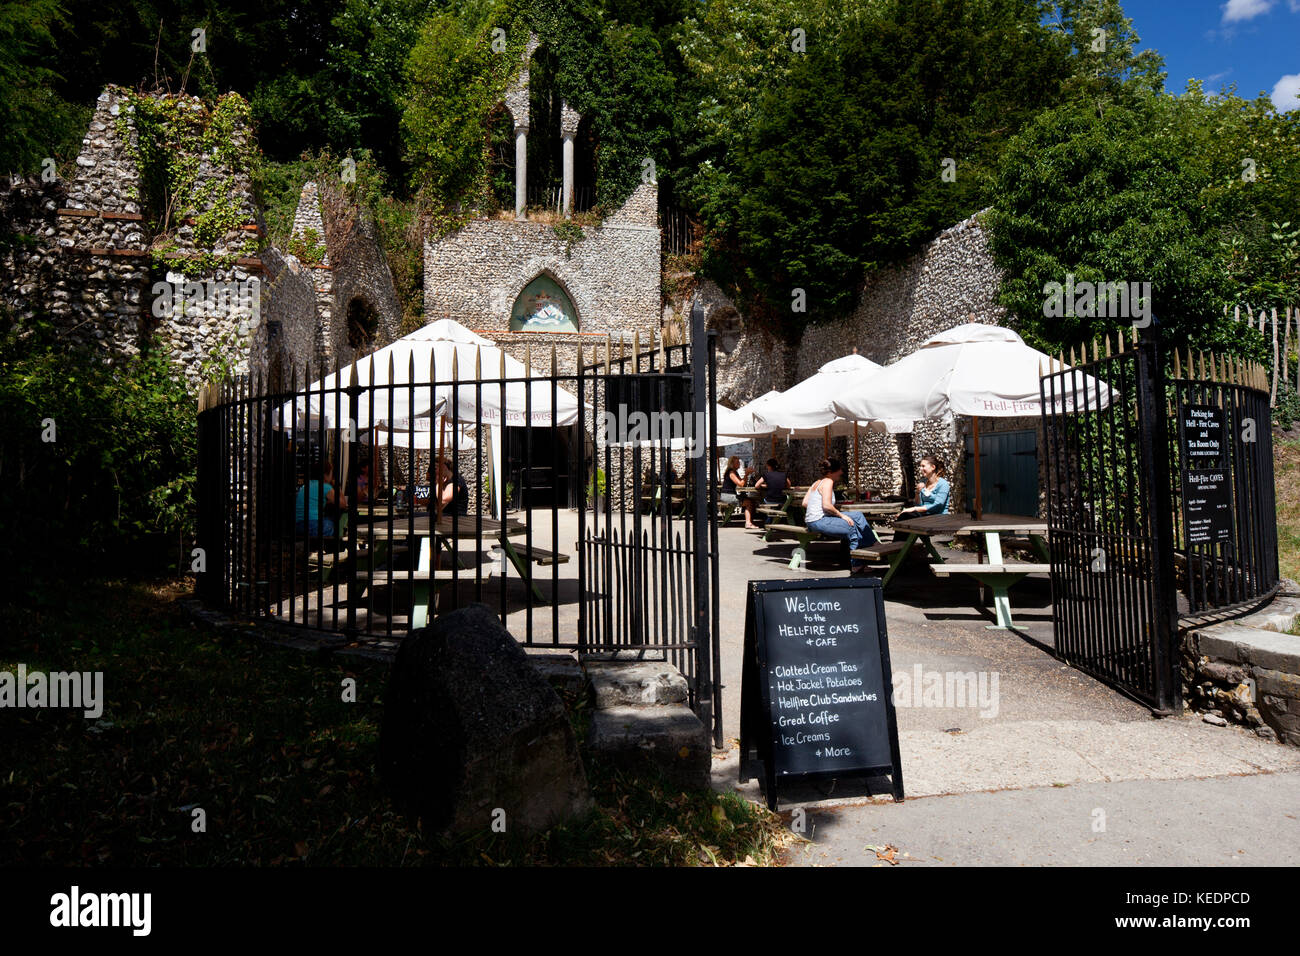 Hell-Fire Caves: entrance and Cafe. 2010. Hell-Fire Caves. West Wycombe. Buckinghamshire. England. - Stock Image